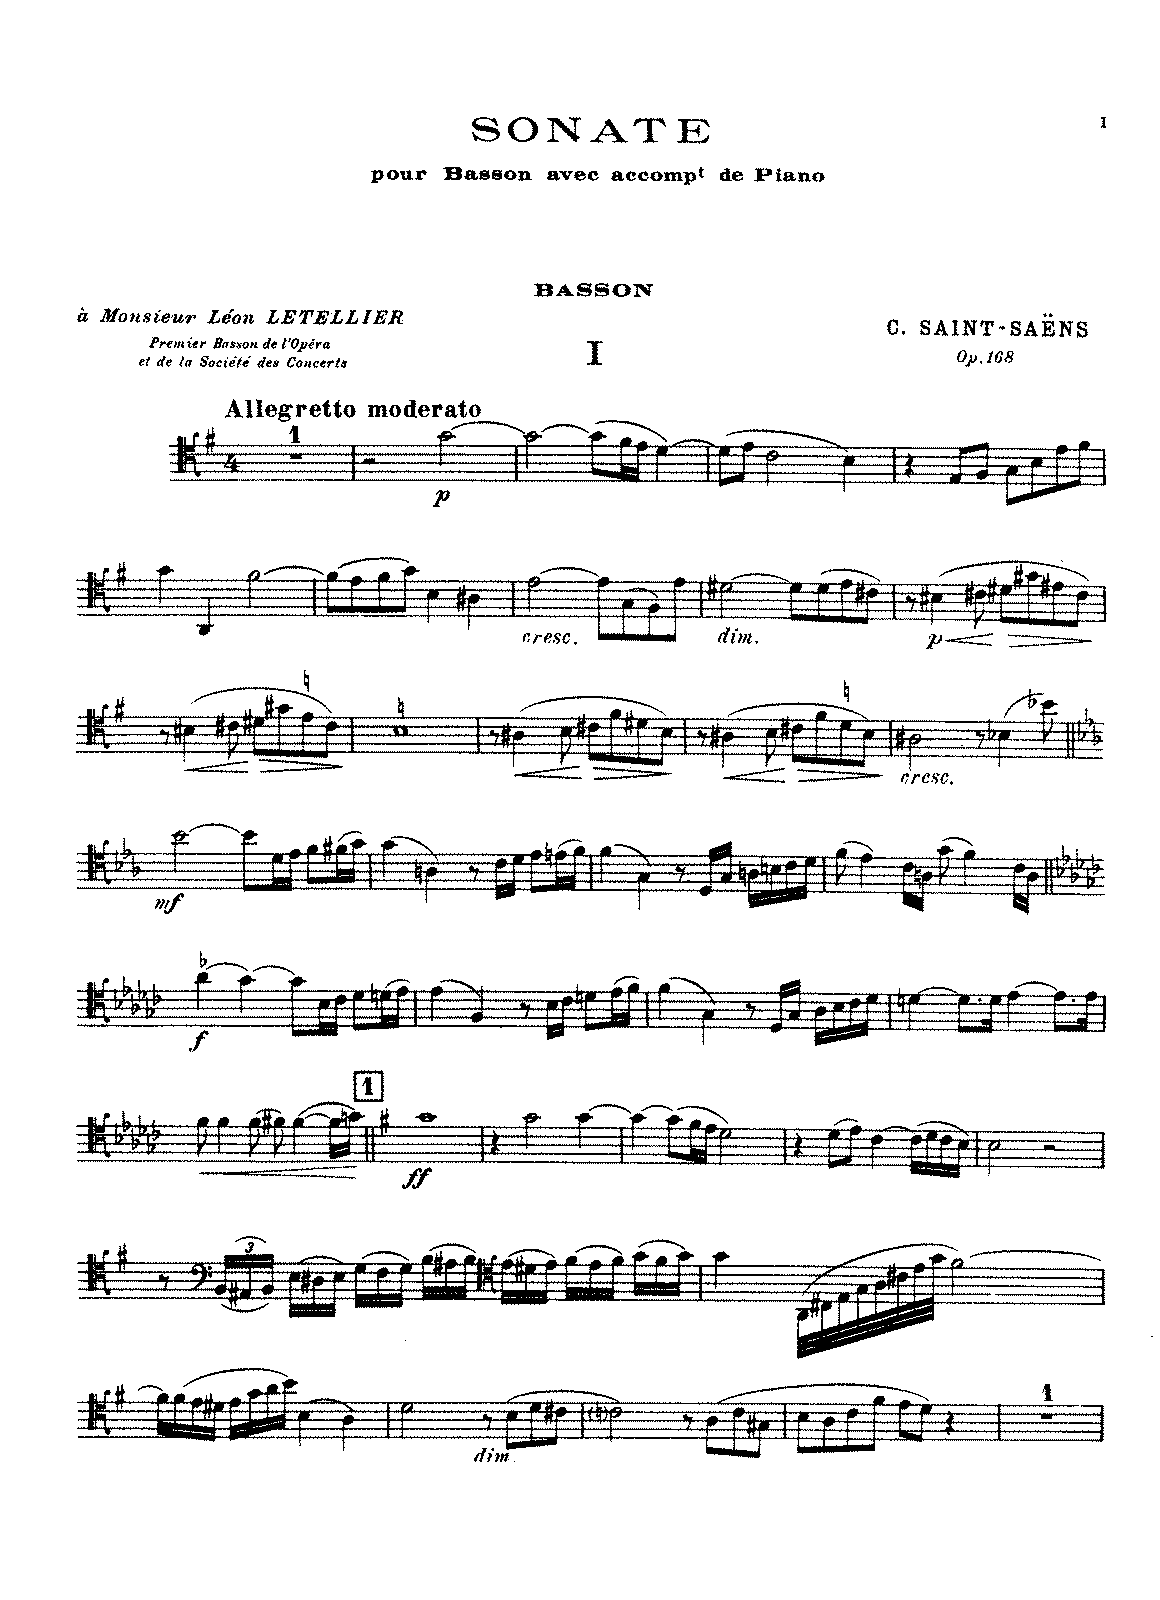 PMLP68835-Saint-Saëns - Sonata for Bassoon and Piano, Op. 168.pdf